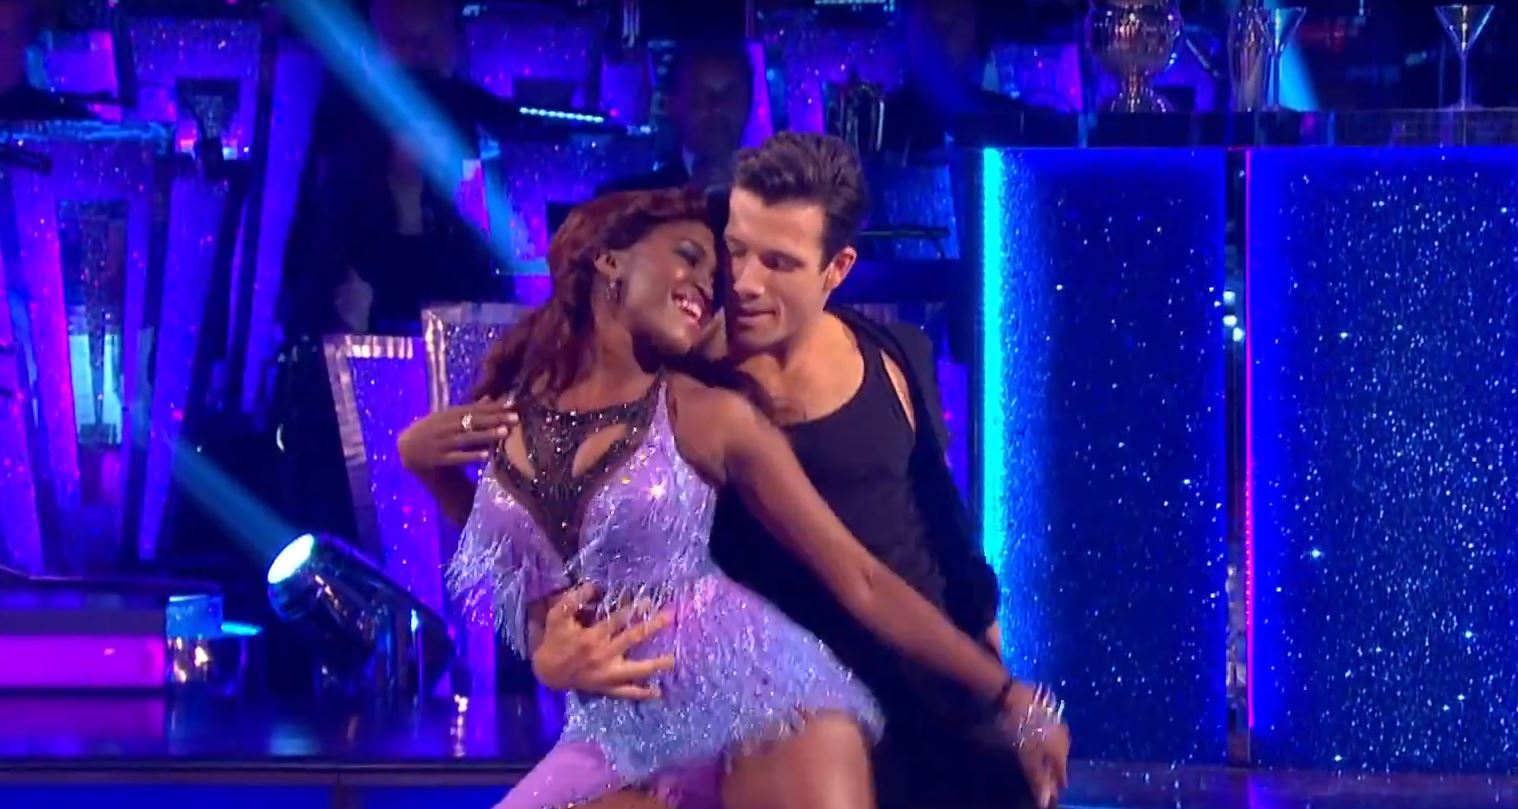 Strictly viewers back Danny Mac to WIN after jaw-droppingly sexy routine that rendered Darcey Bussell speechless